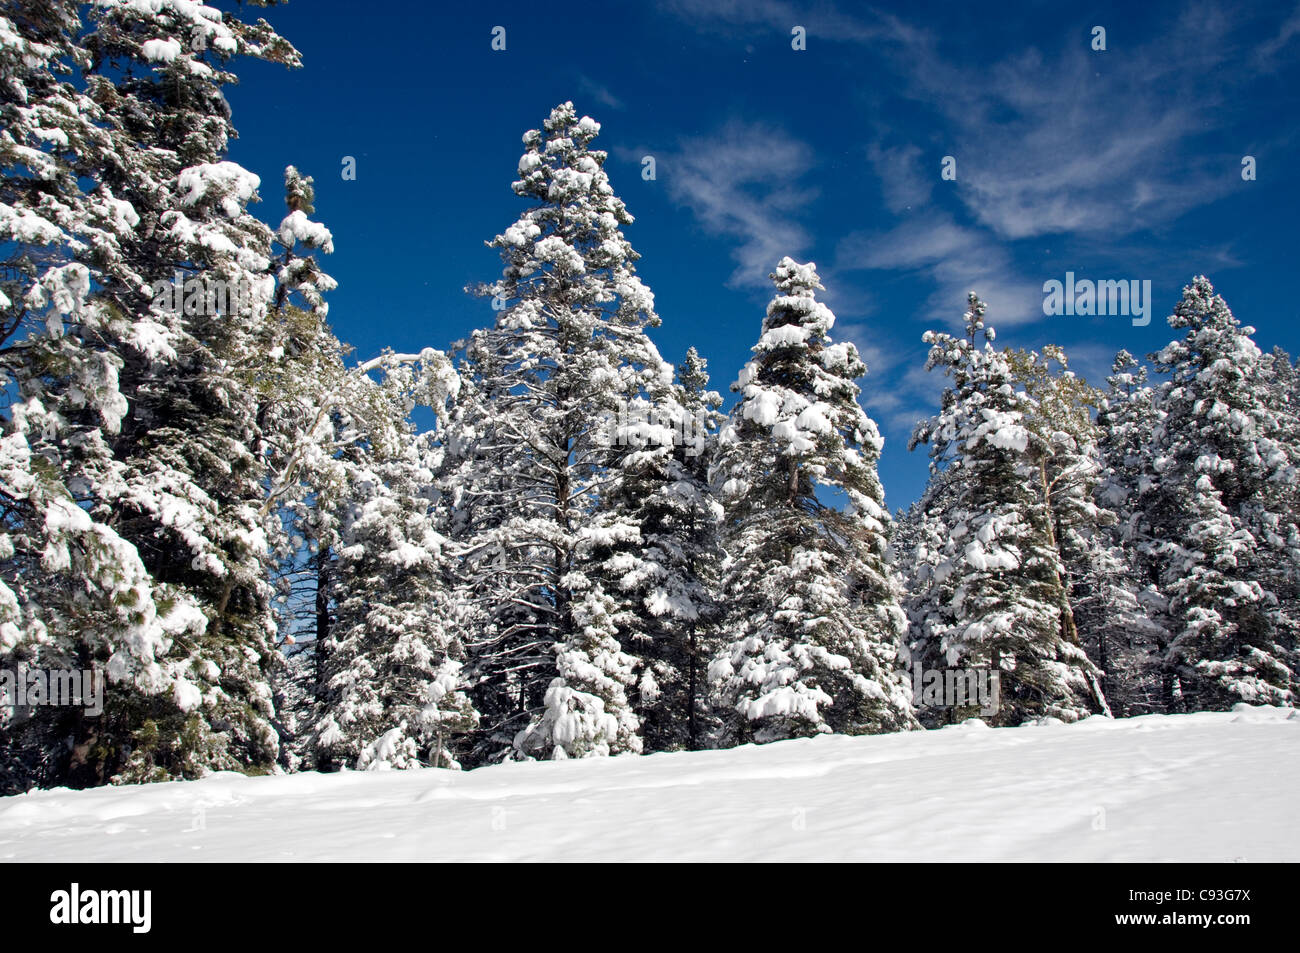 snow winter scene evergreen trees - Stock Image